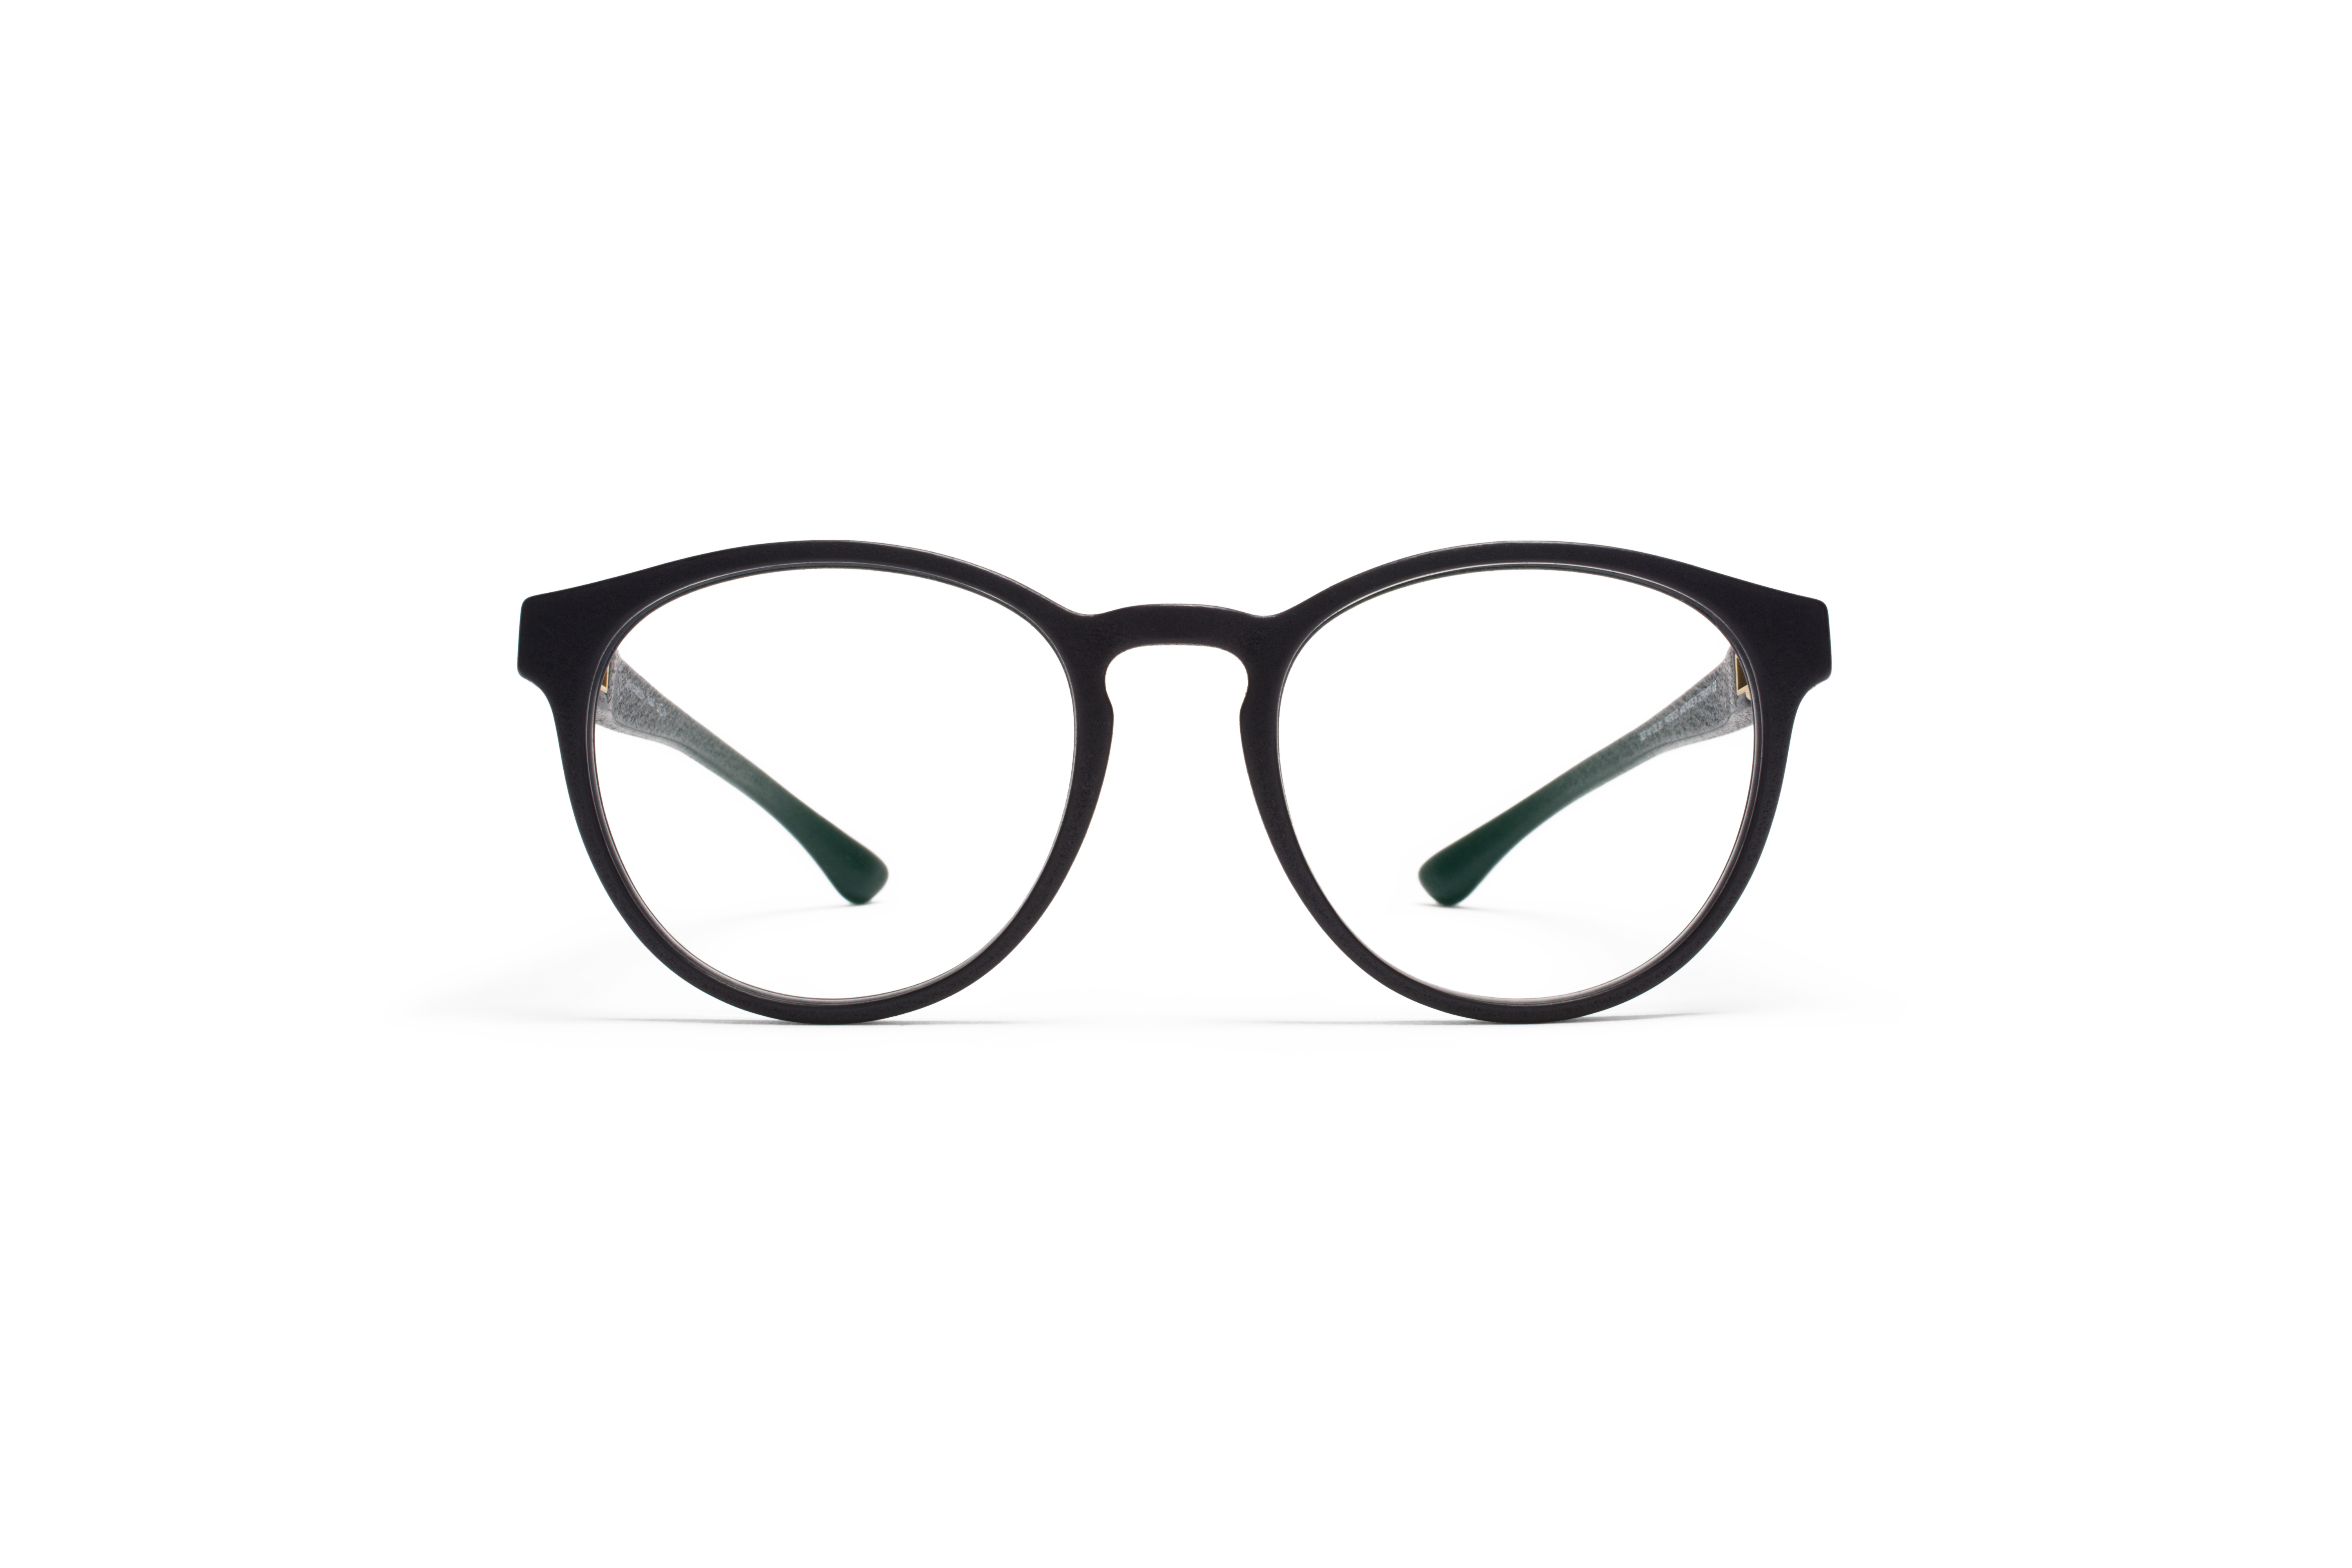 Mykita Mylon Rx Saba Md1 Pitch Black Clear 35022195707c40899820